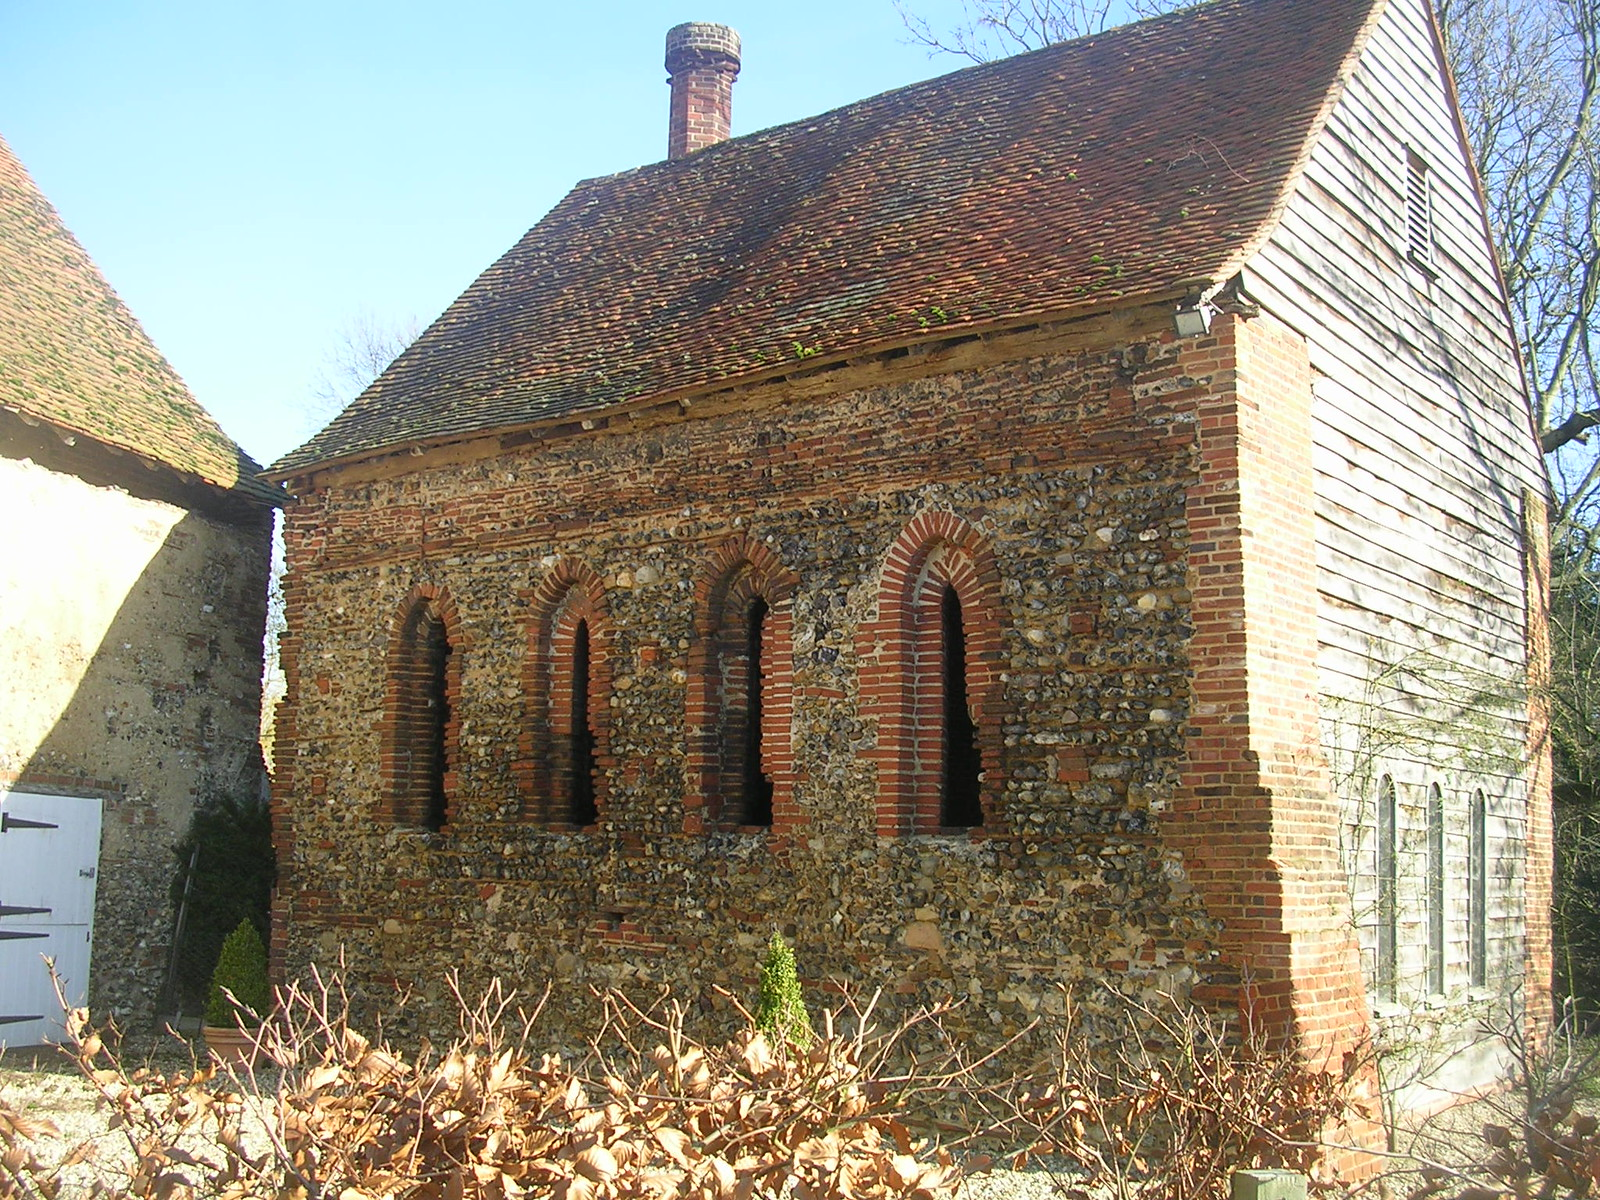 St Nicholas' chapel 13th century. Early example of British brickmaking. Kelvedon circular via Coggeshall